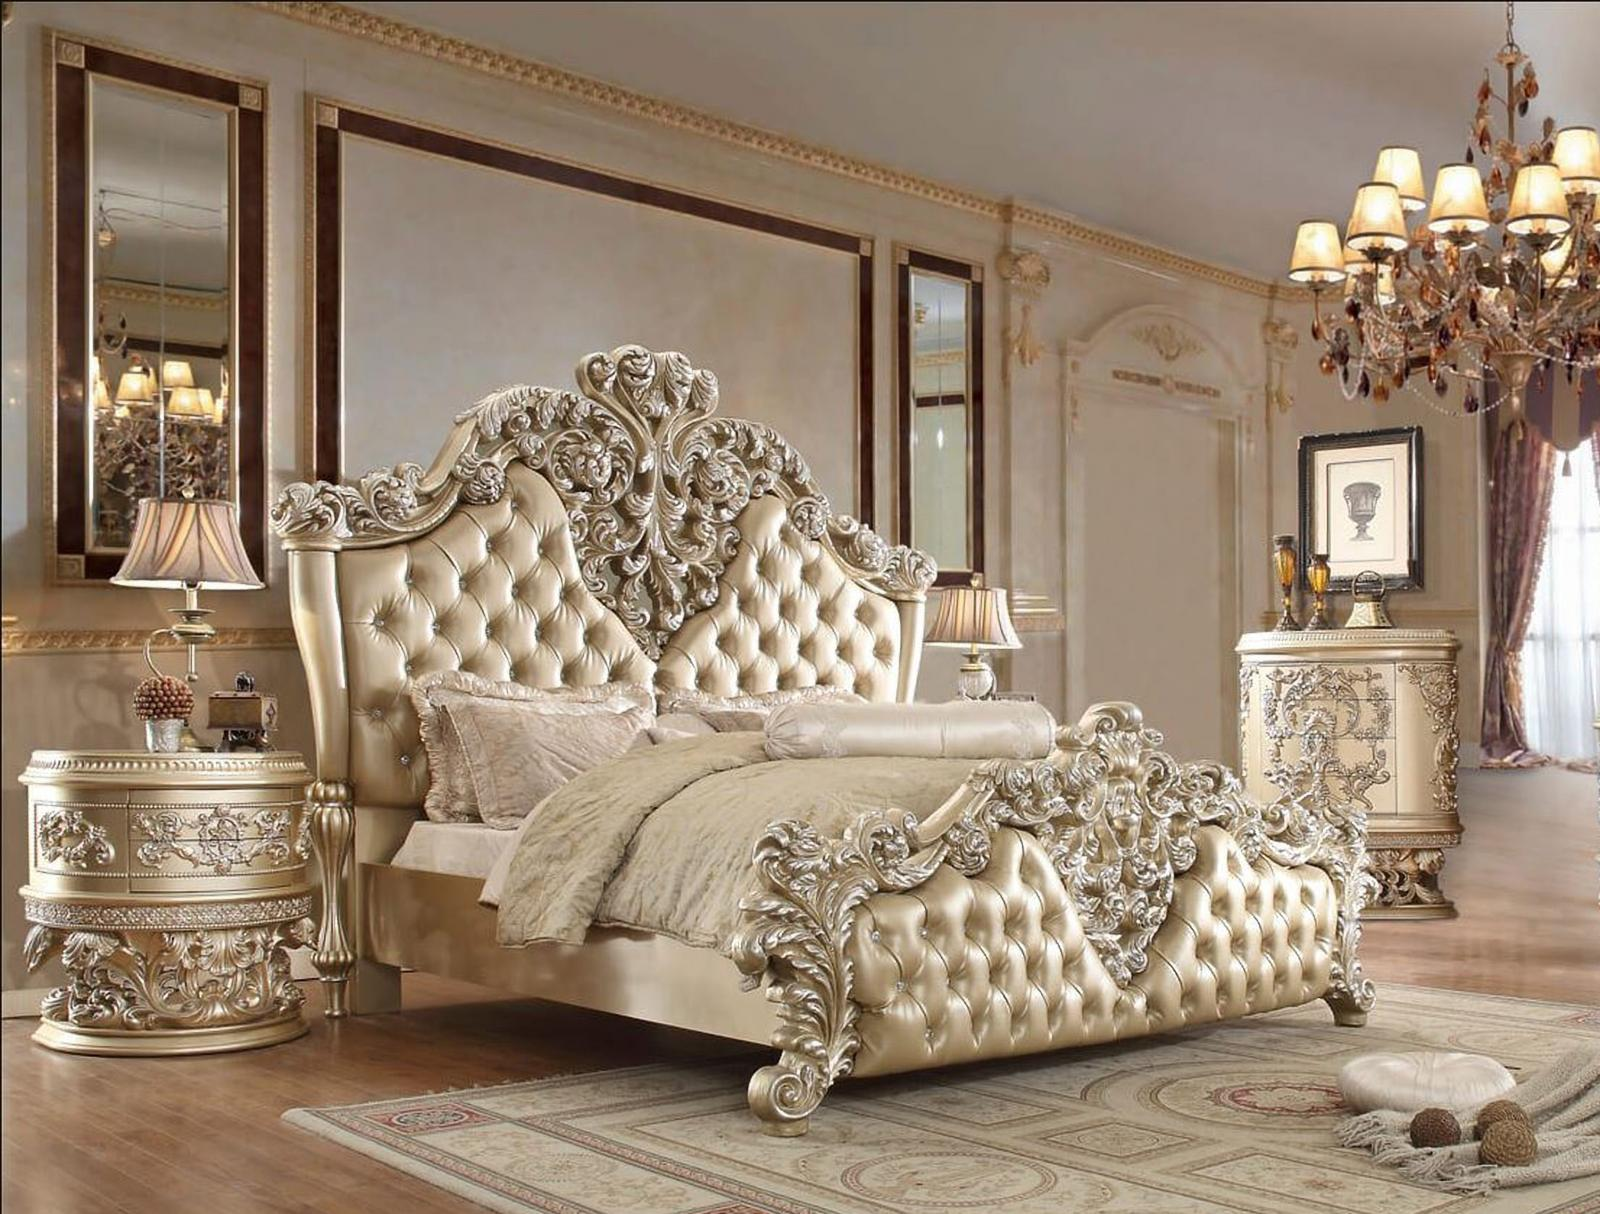 Traditional Champagne, Silver Faux Leather and Wood, Solid Hardwood Sleigh Bedroom Set 3 pcs HD-8022 by Homey Design